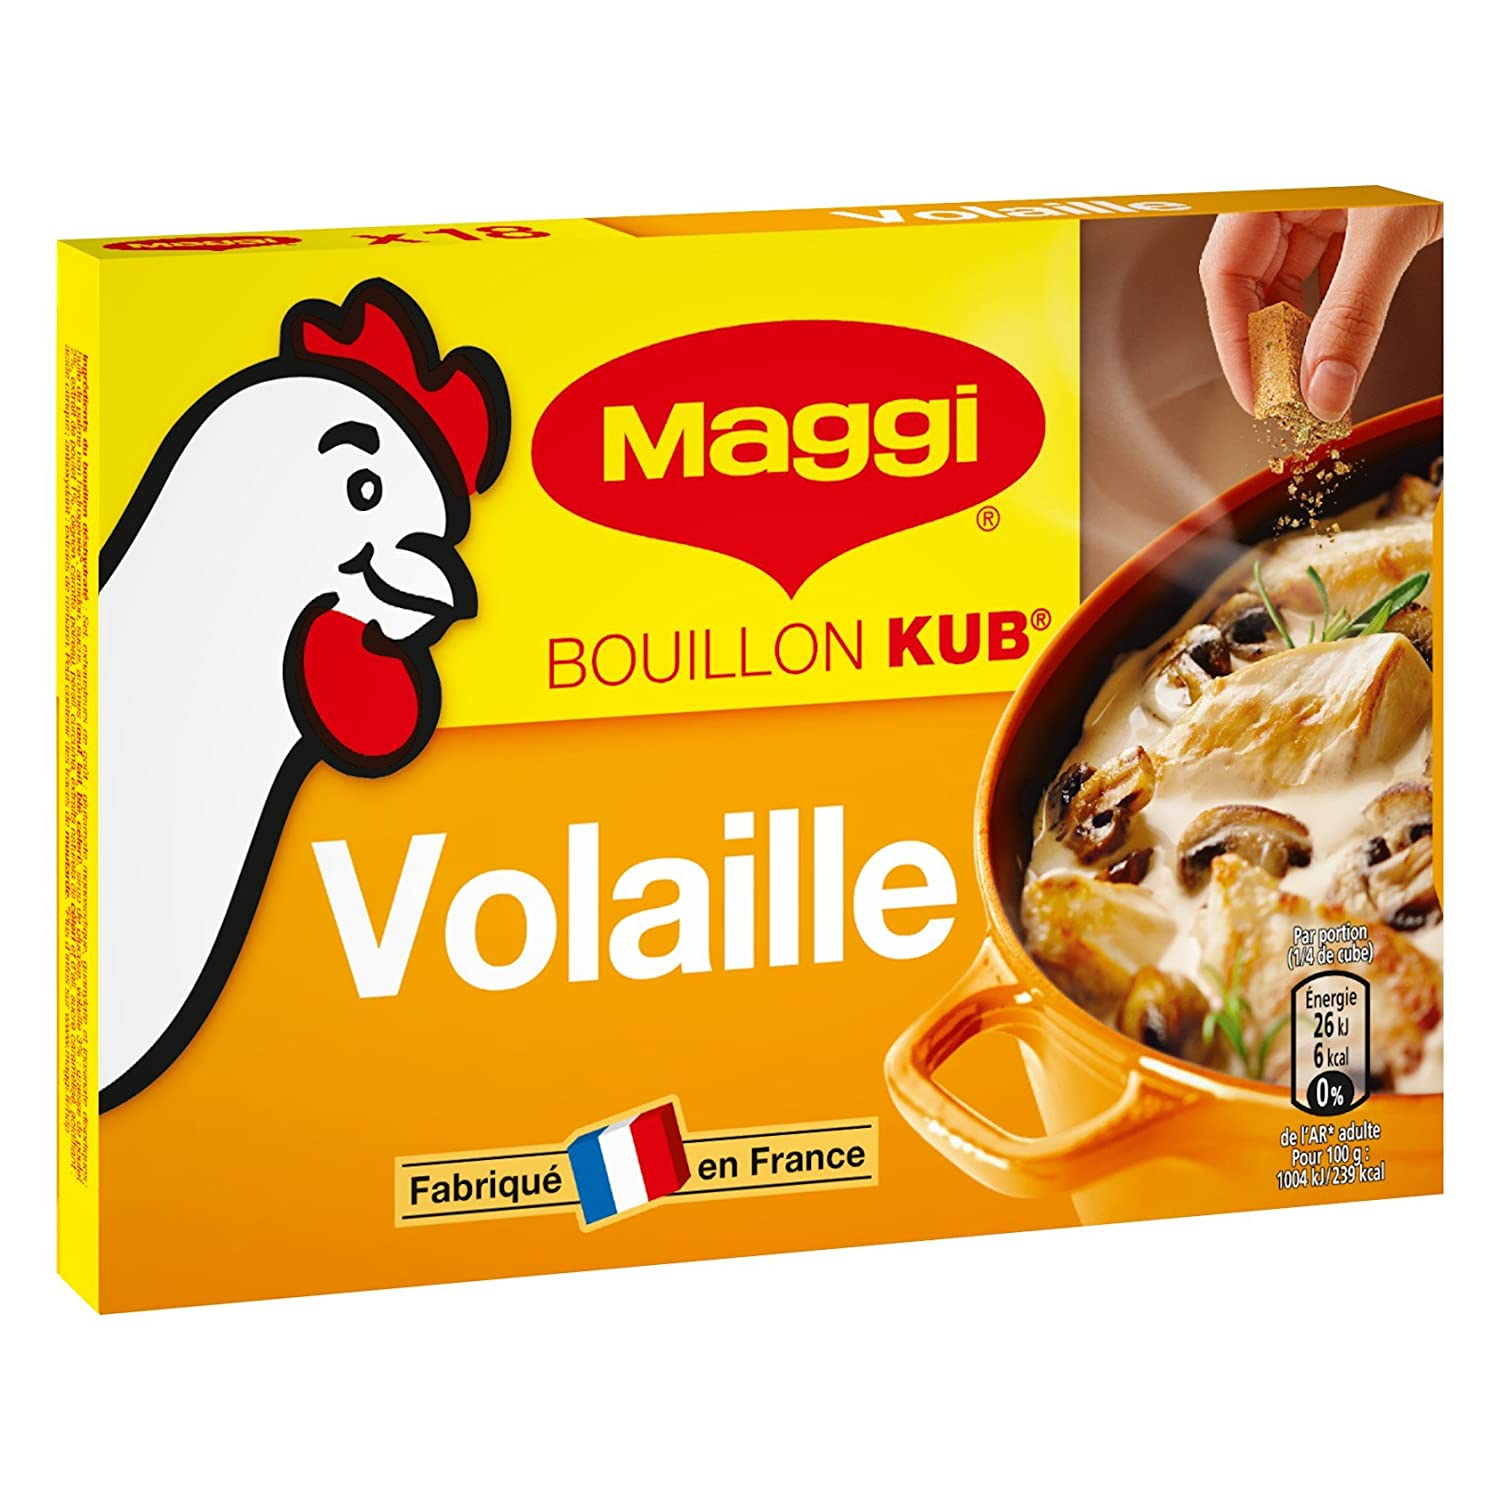 newest new arrive free shipping Maggi Bouillon KUB Volaille (18 tablettes) 180g - Lot de 5